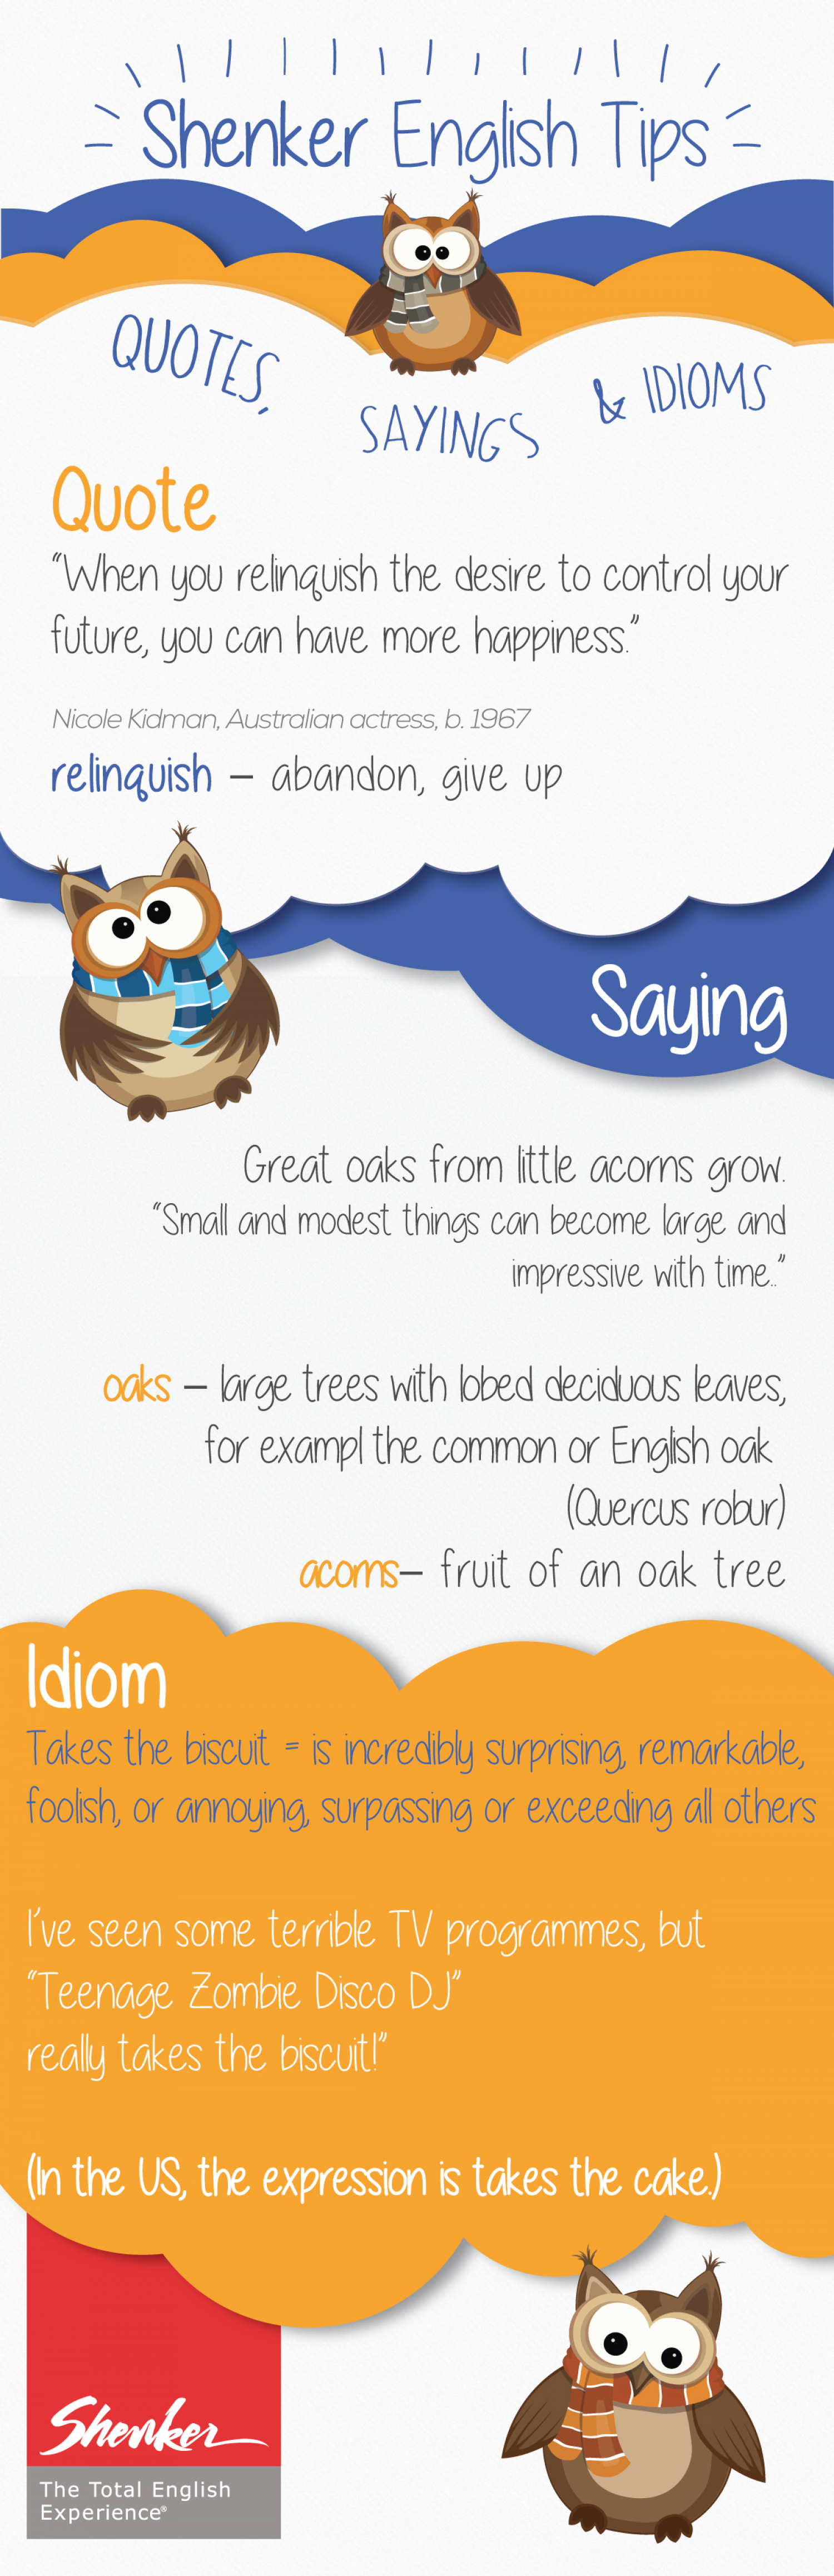 Shenker English Tips - Quotes, Sayings & Idioms /2 Infographic